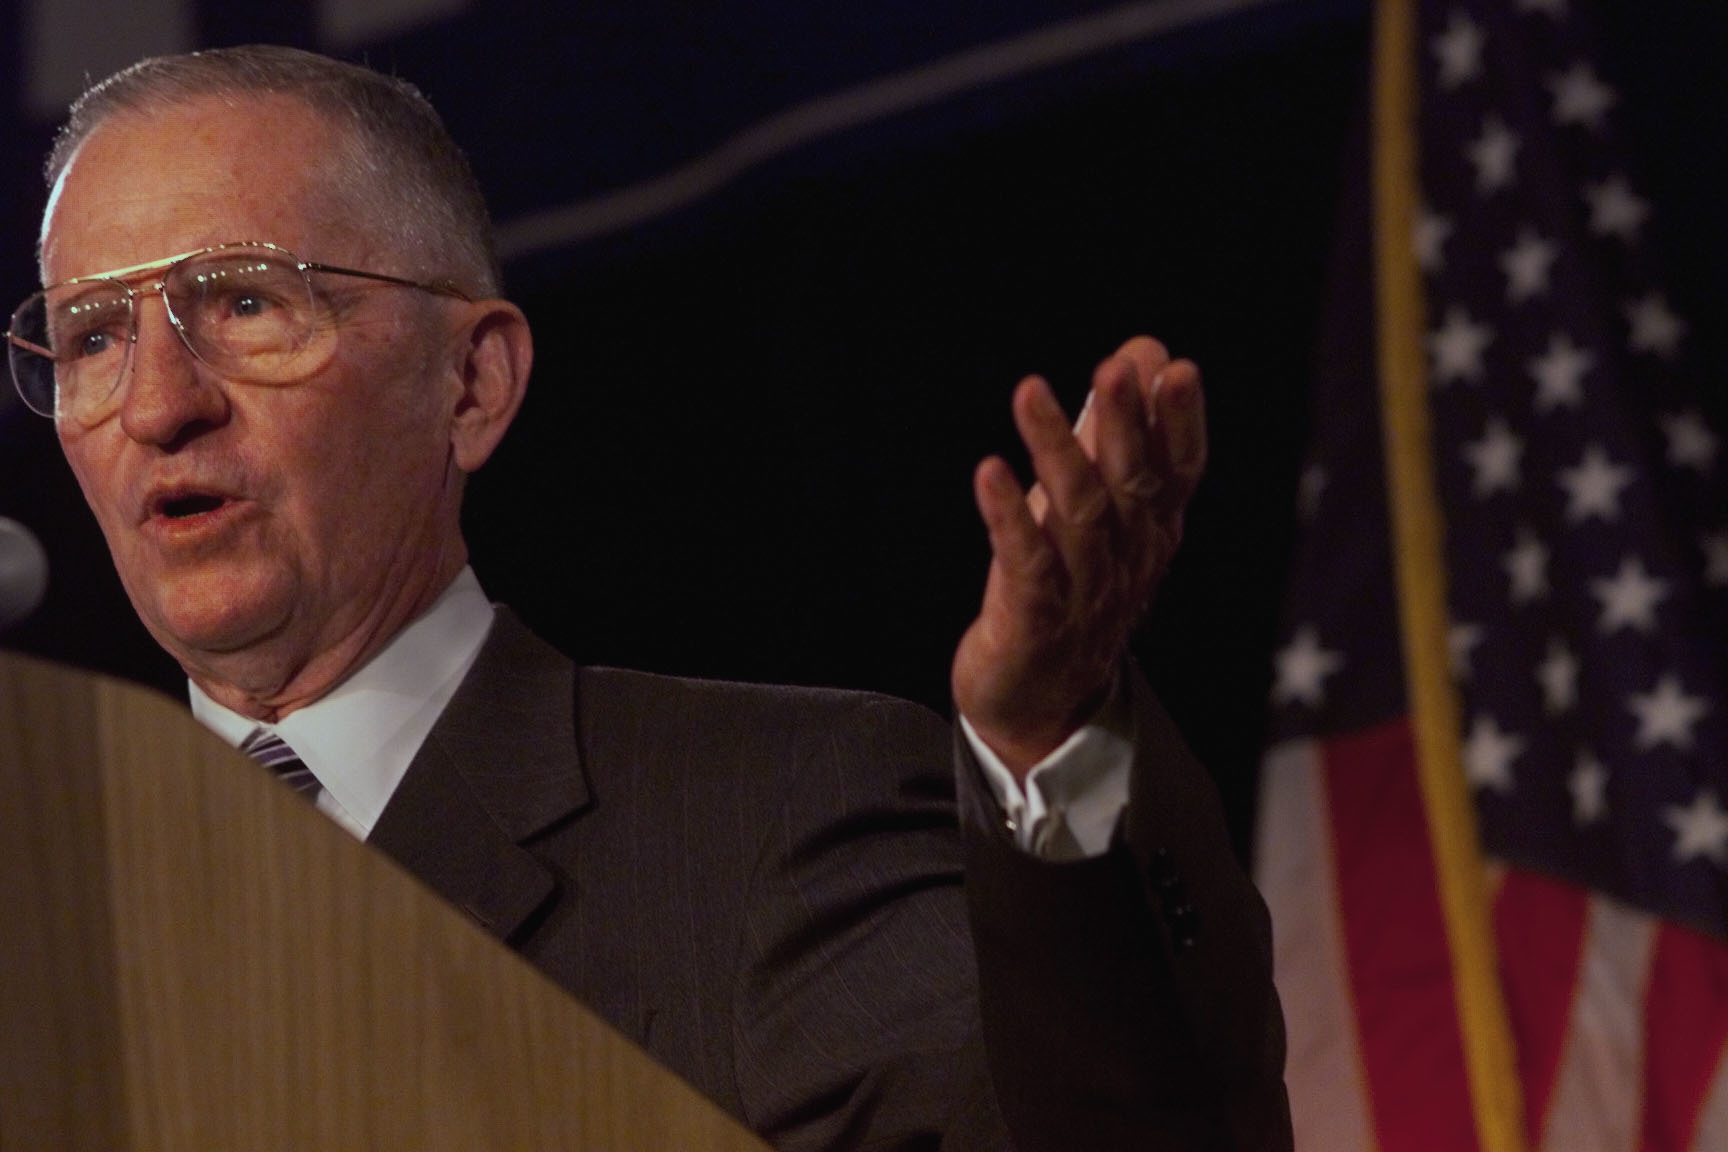 7/24/99- Reform Party founder Ross Perot speaks to delegates at the party's 1999 national convention in Dearborn, Texas Saturday night. Perot stressed the problems with the two-party system and urged Reform party members to remain honest politicians.(Phot